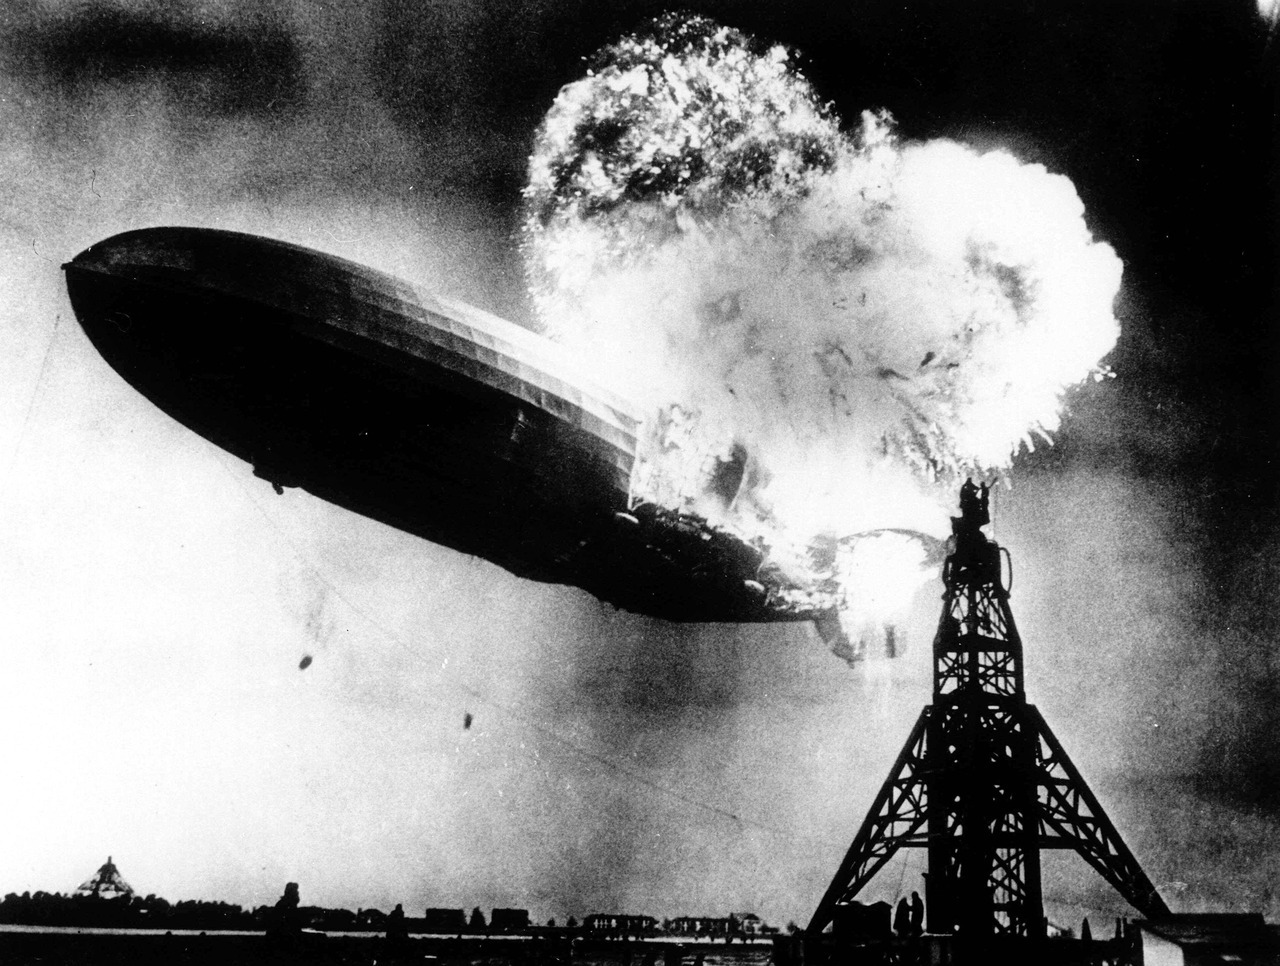 mary-beth:  The Hindenburg Disaster by Sam Shere (1937)